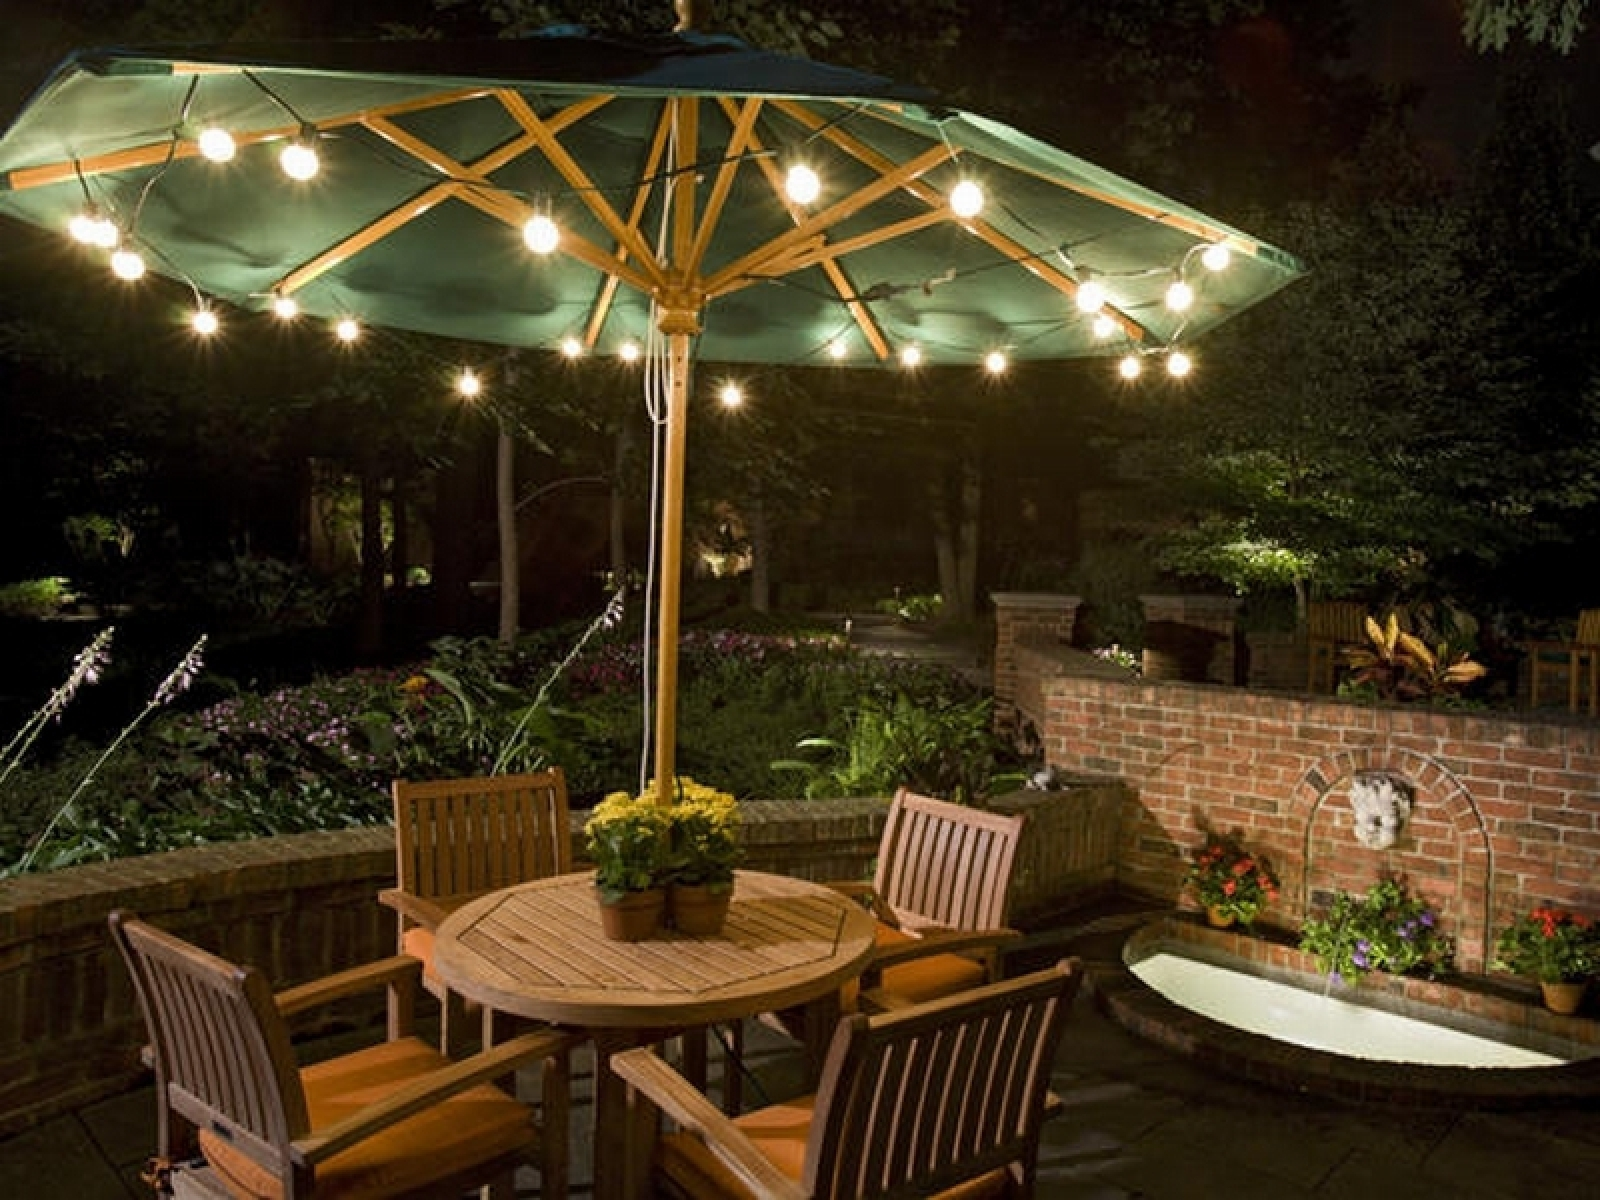 Outdoor : Outdoor Hanging Porch Lights Yard Lighting Ideas Outdoor Throughout Outdoor Hanging Wall Lights (#12 of 18)